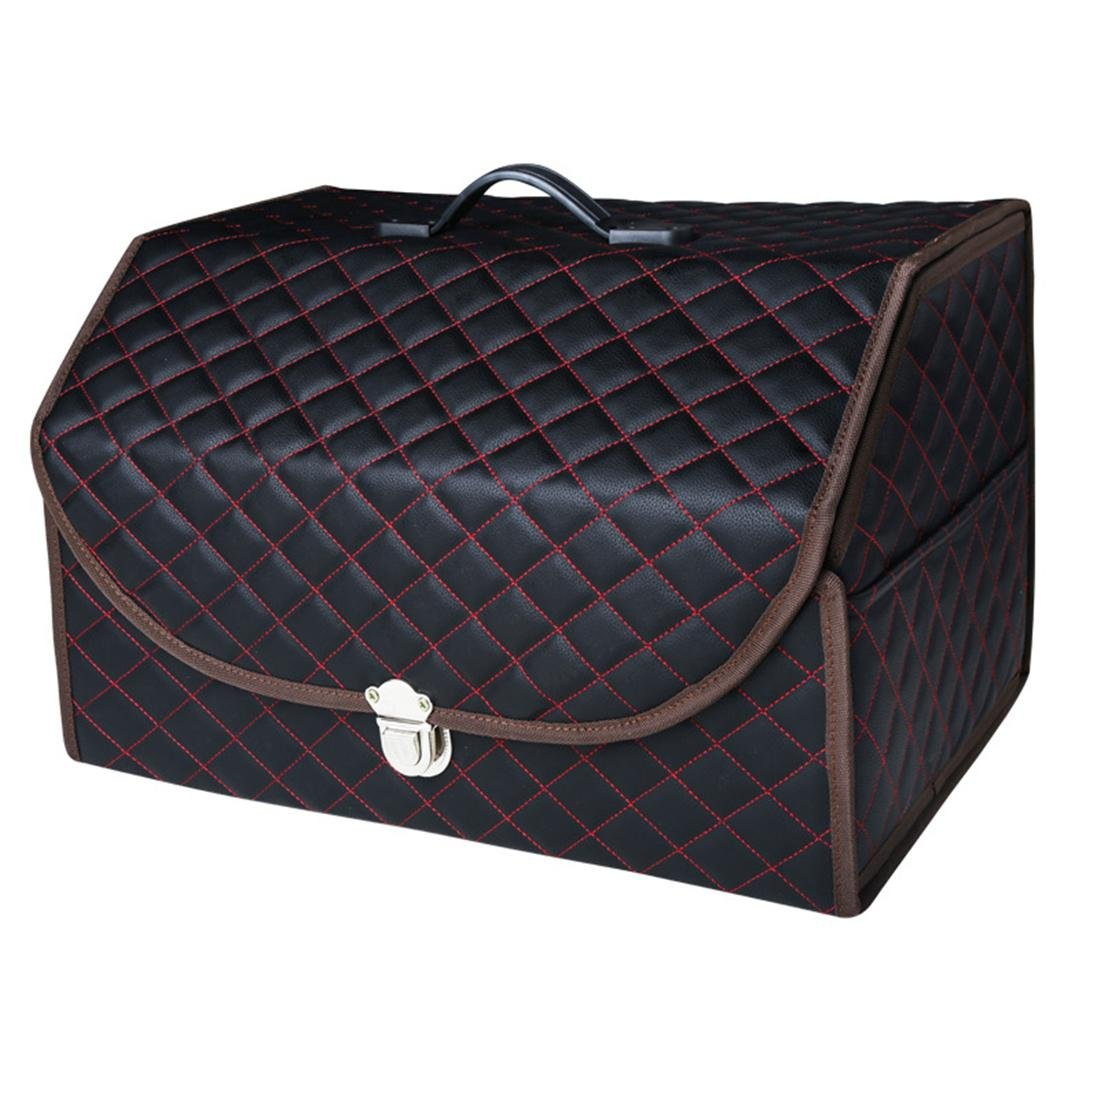 Black 1 Car Trunk Boot Box Foldable SUV Leather Storage Organiser Collapsible Auto Minivan Truck Shopping Travel Holder With Lid Handle